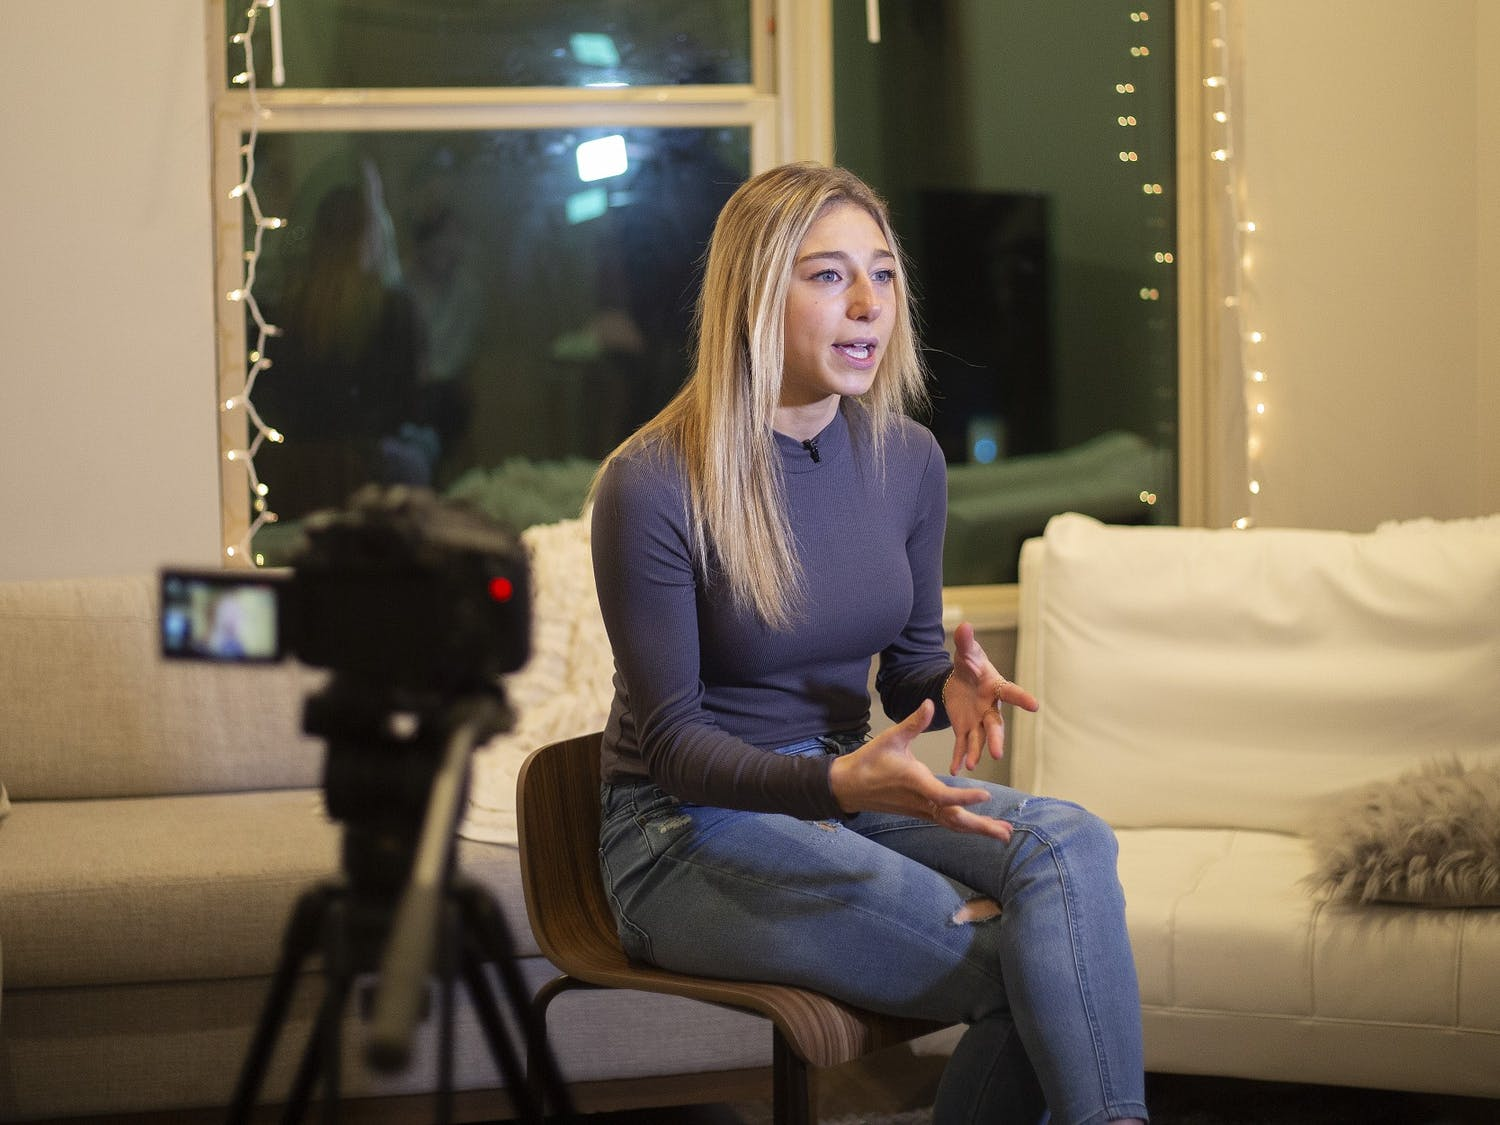 """Alexa Casciano sits in her friend's living room on February 2, 2021. Casciano was in the hospital for 28 days when she was sixteen. The experience changed her outlook on life. Casciano said, """"You know there are not a lot of things you can control in your life, but the way you feel is definitely one of them. If you are going through hell, keep going. I think about that every single day."""" Photo courtesy of Dana Gentry."""